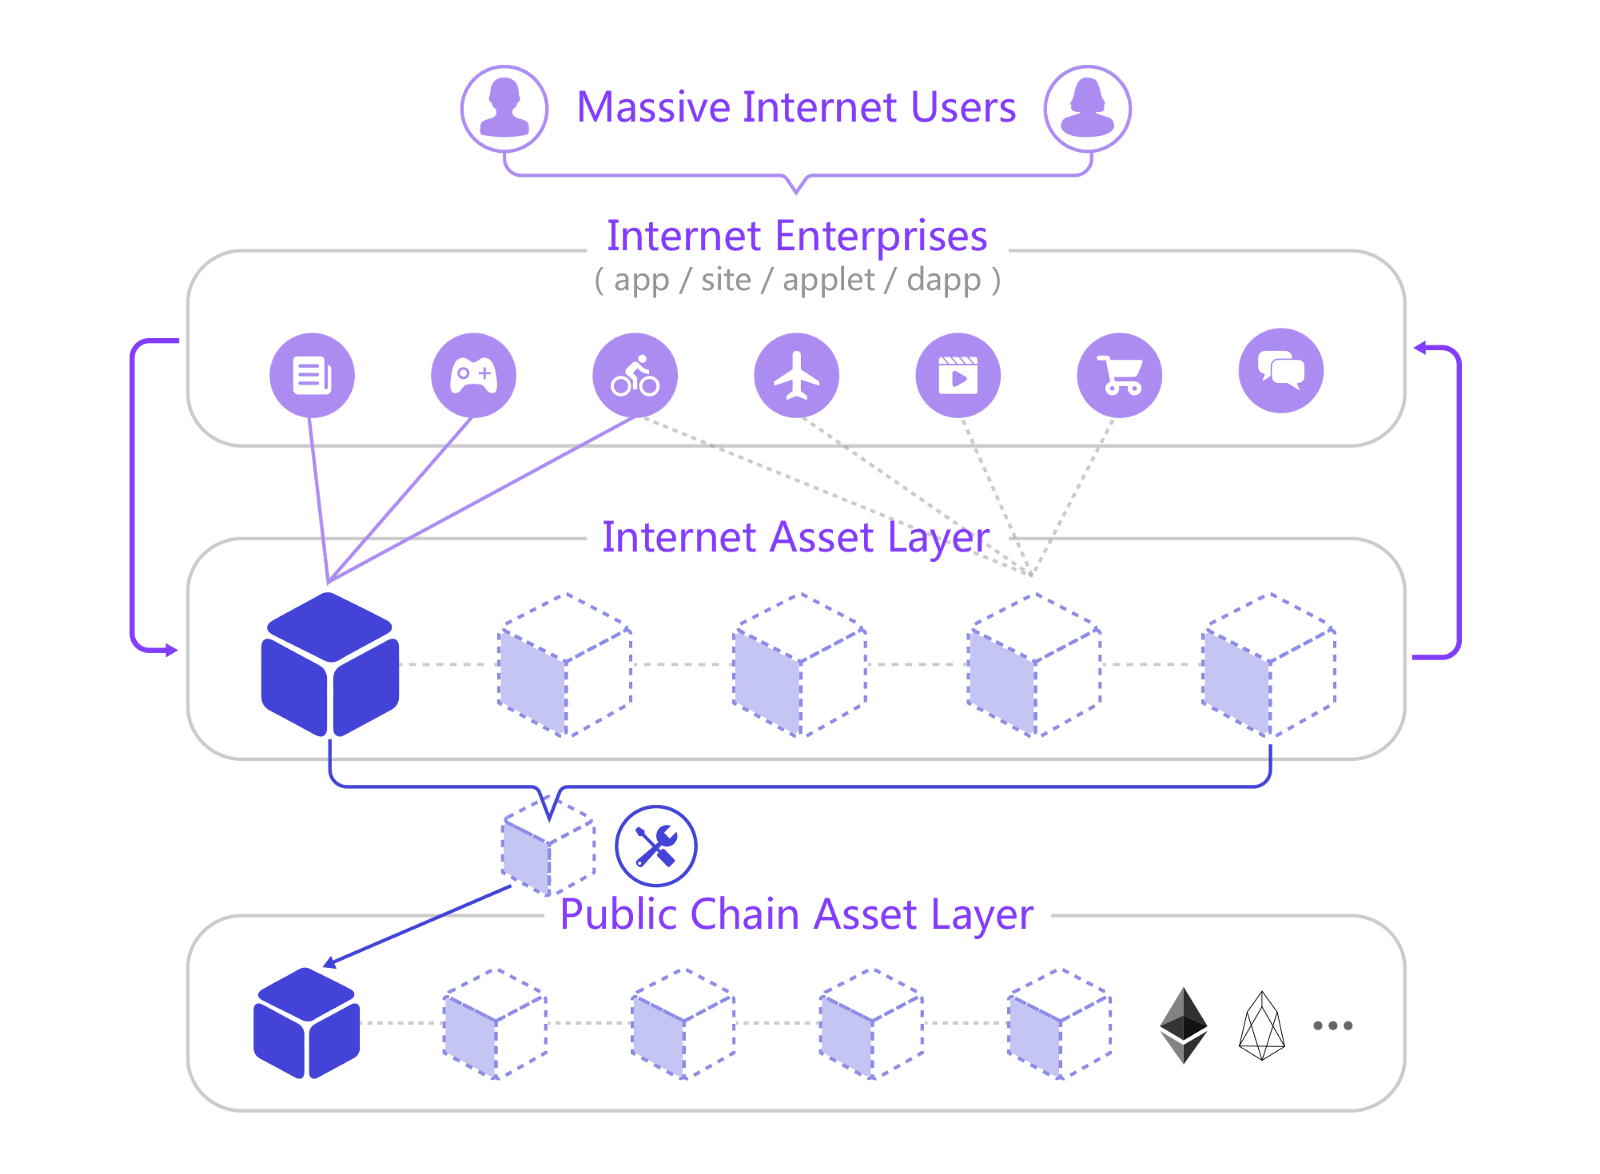 merculet ico project structure